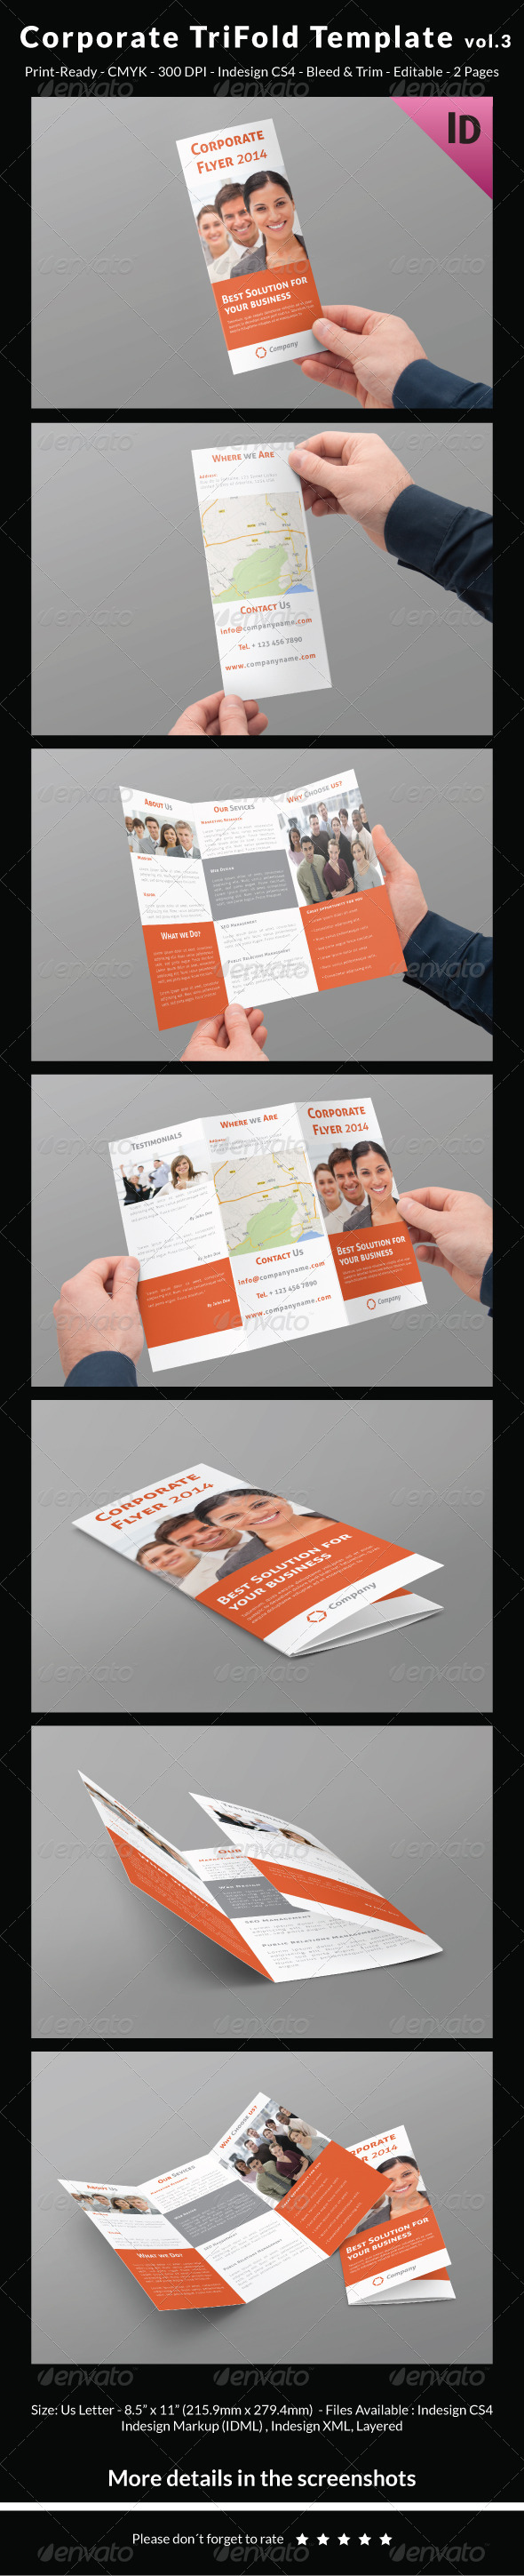 Corporate Trifold Template vol.3